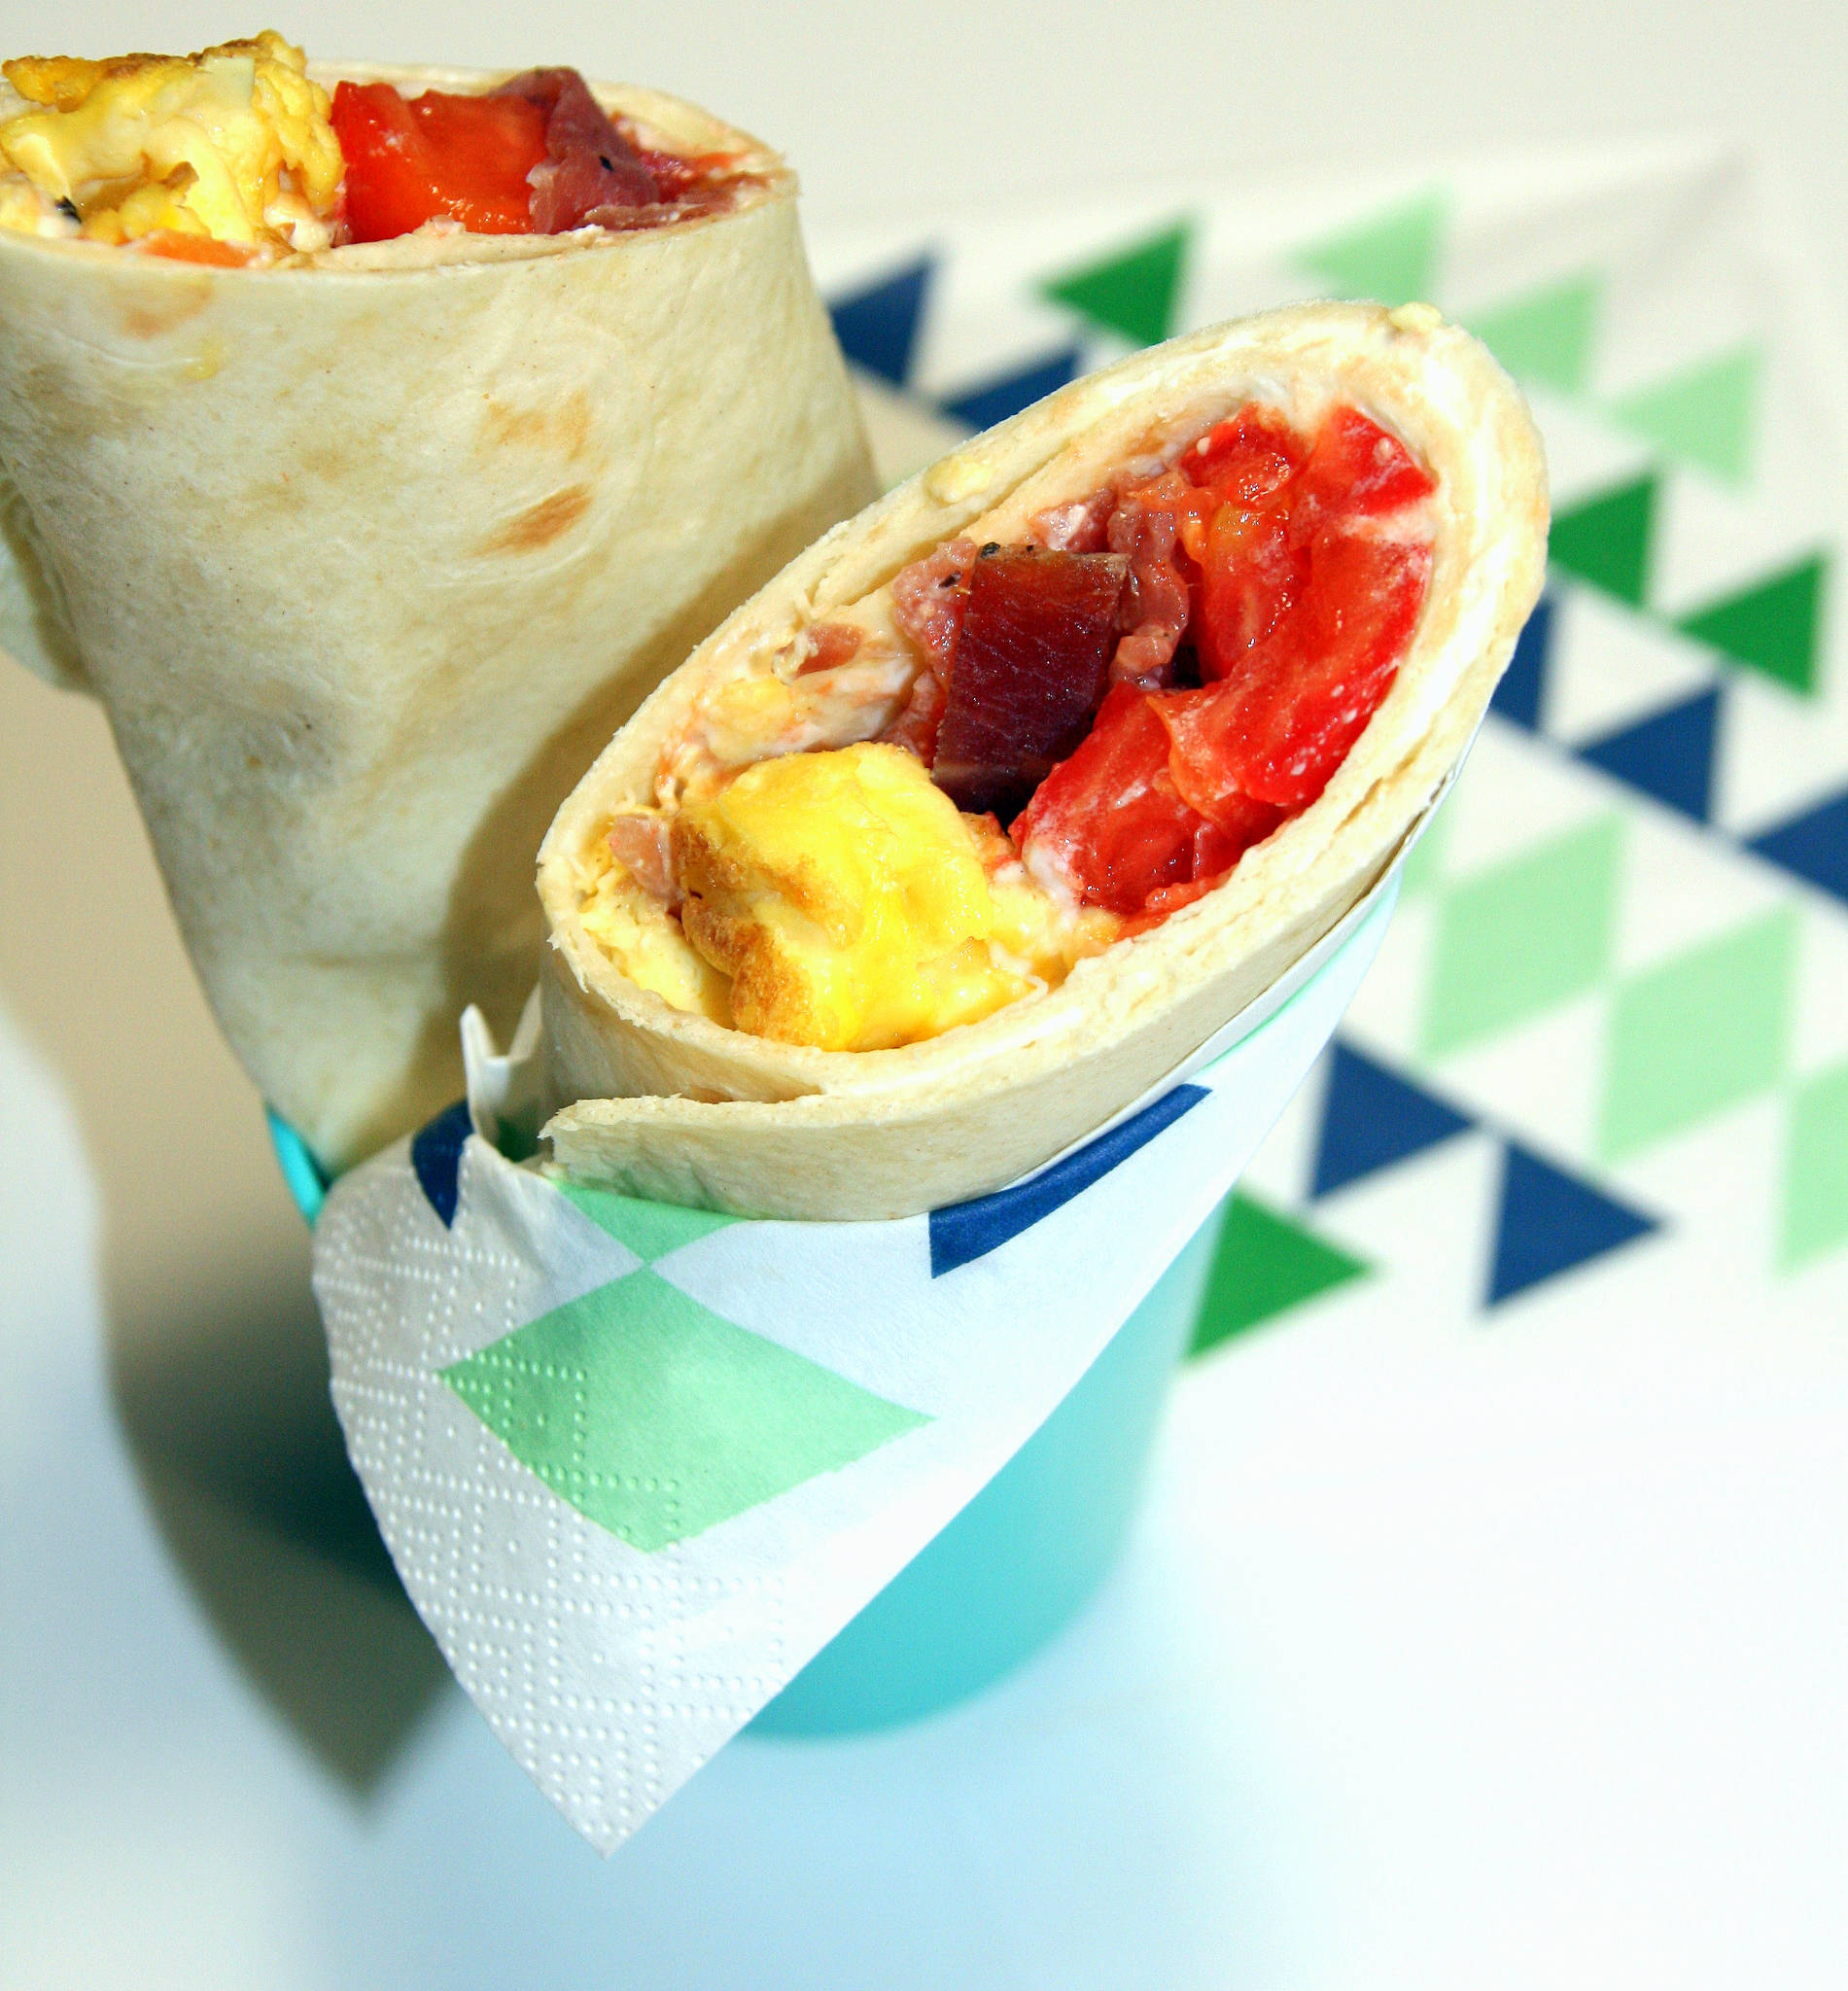 Wrap omelette, bacon, tomate, sauce fromage frais